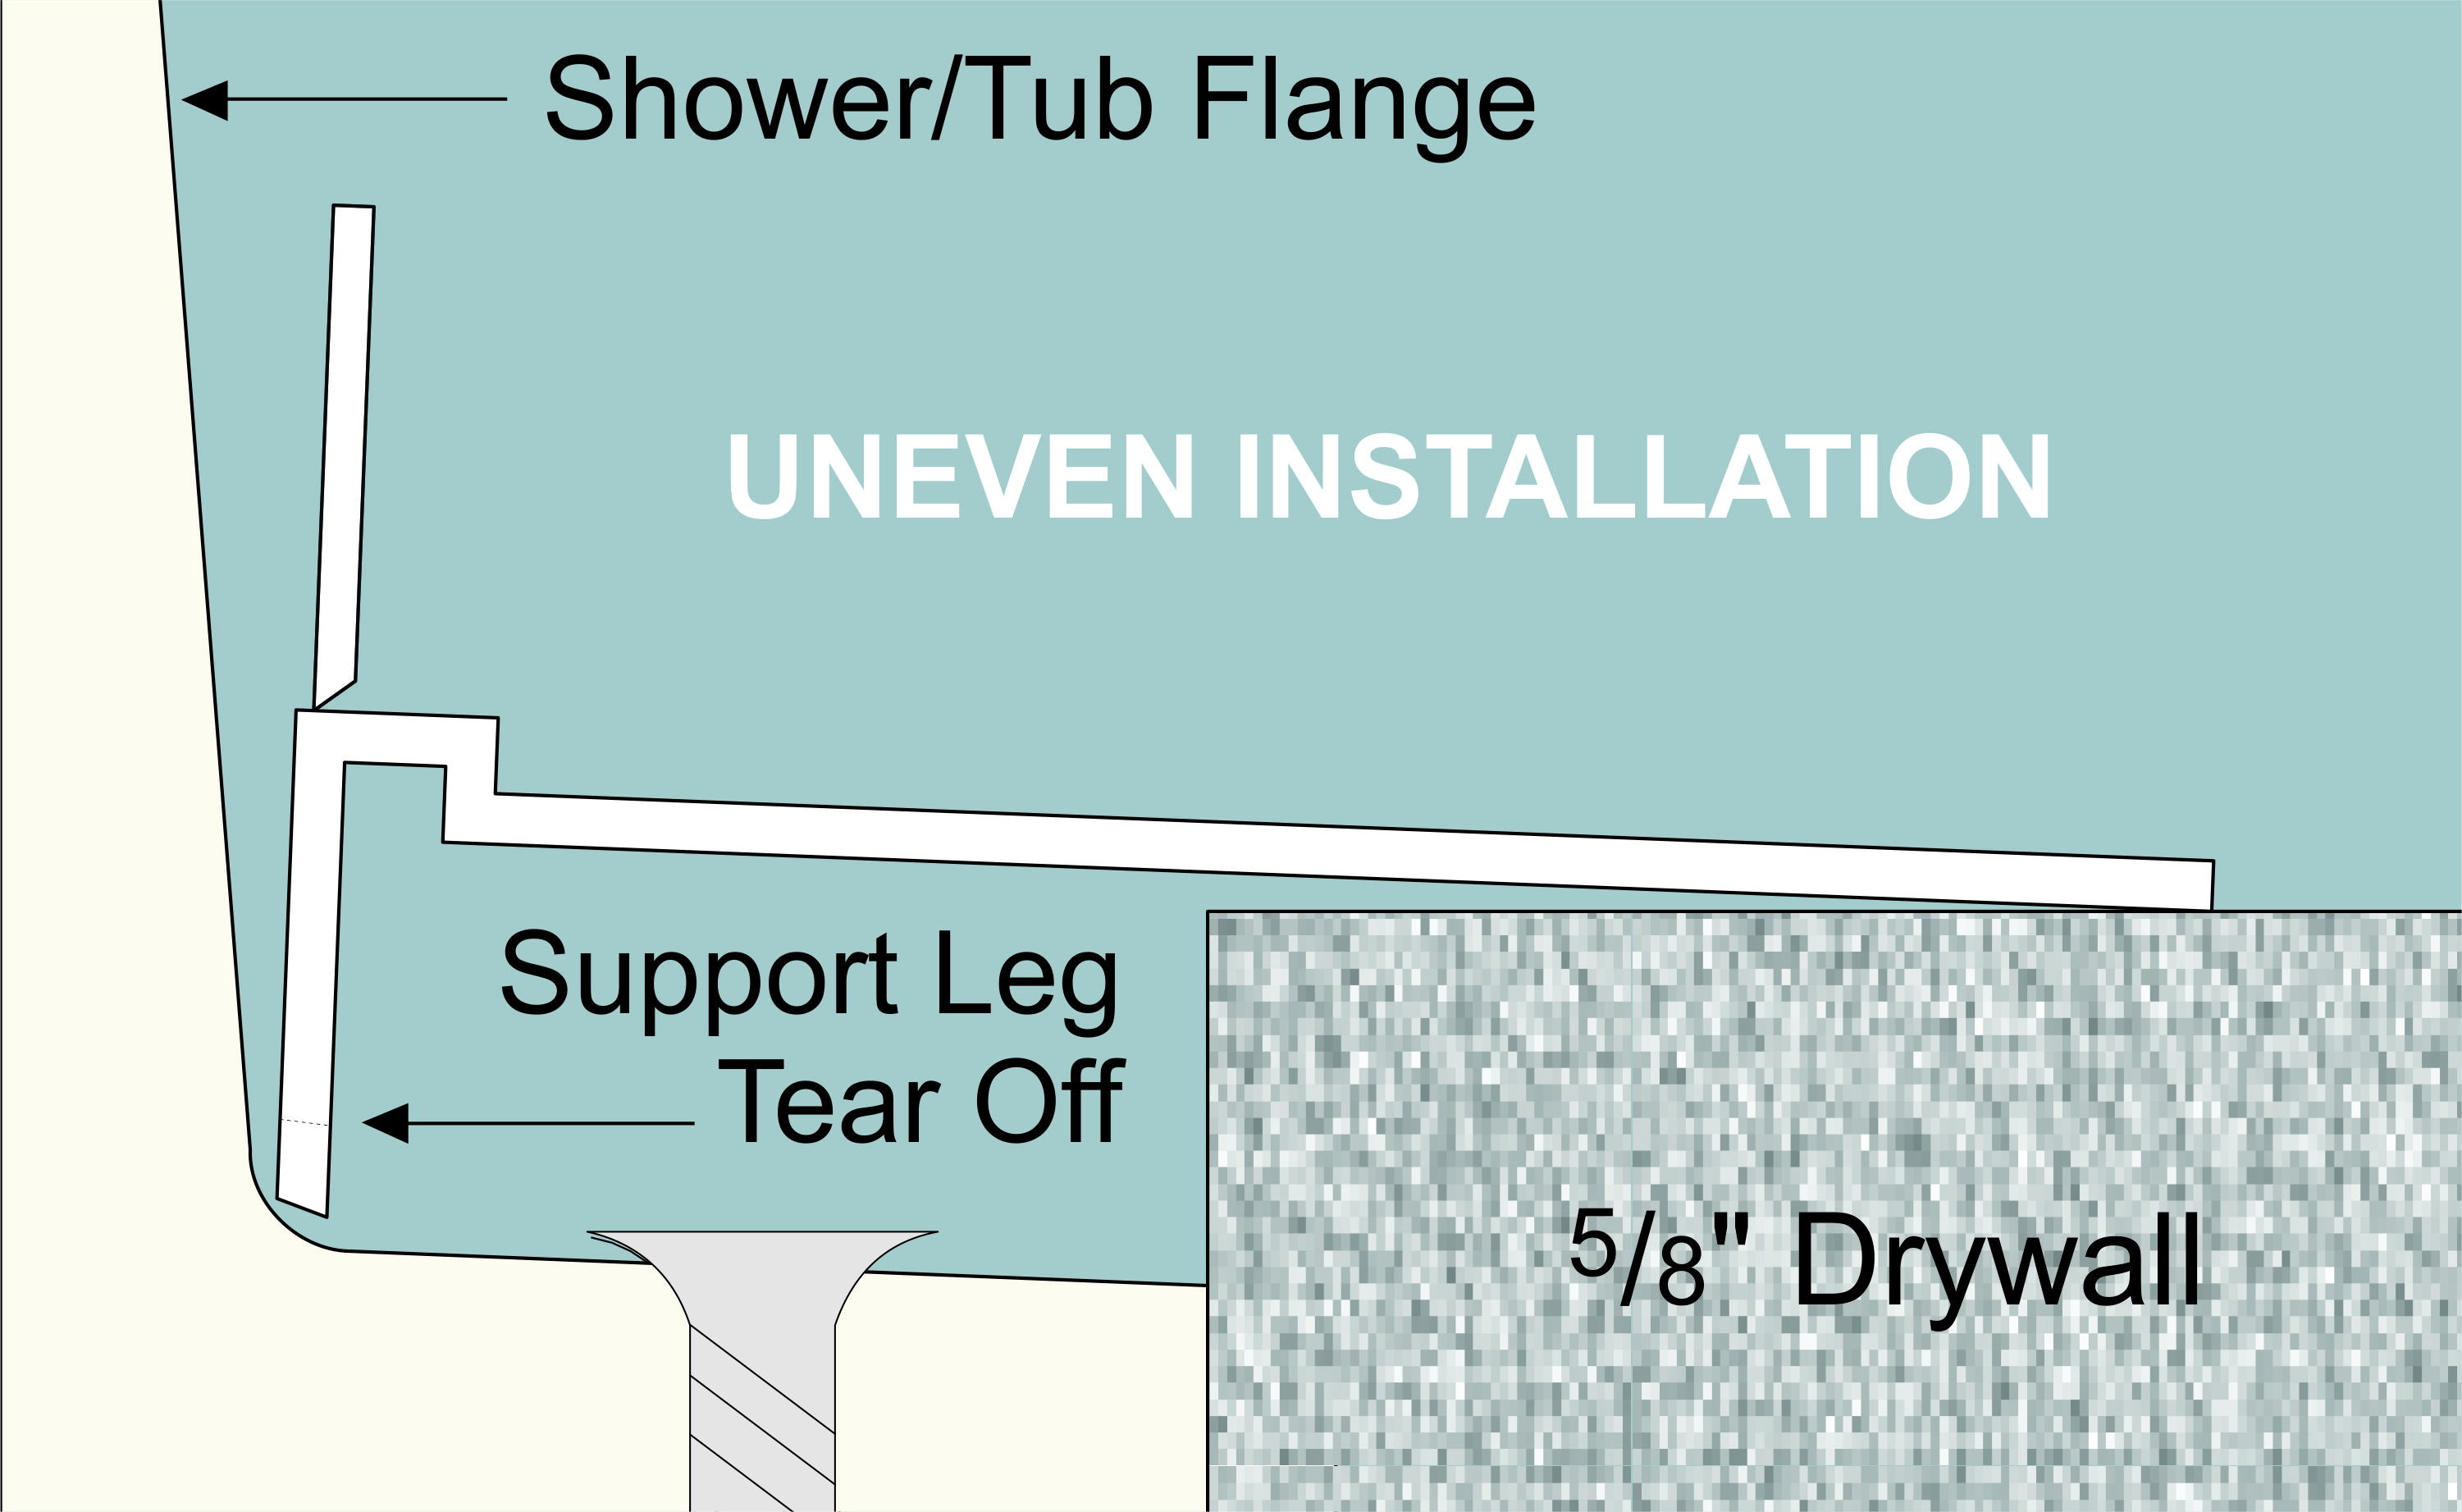 Snip a short piece of Shower Bead and lay it on the wall. If the Shower bead does not lay flat, then tear off the support leg as shown.